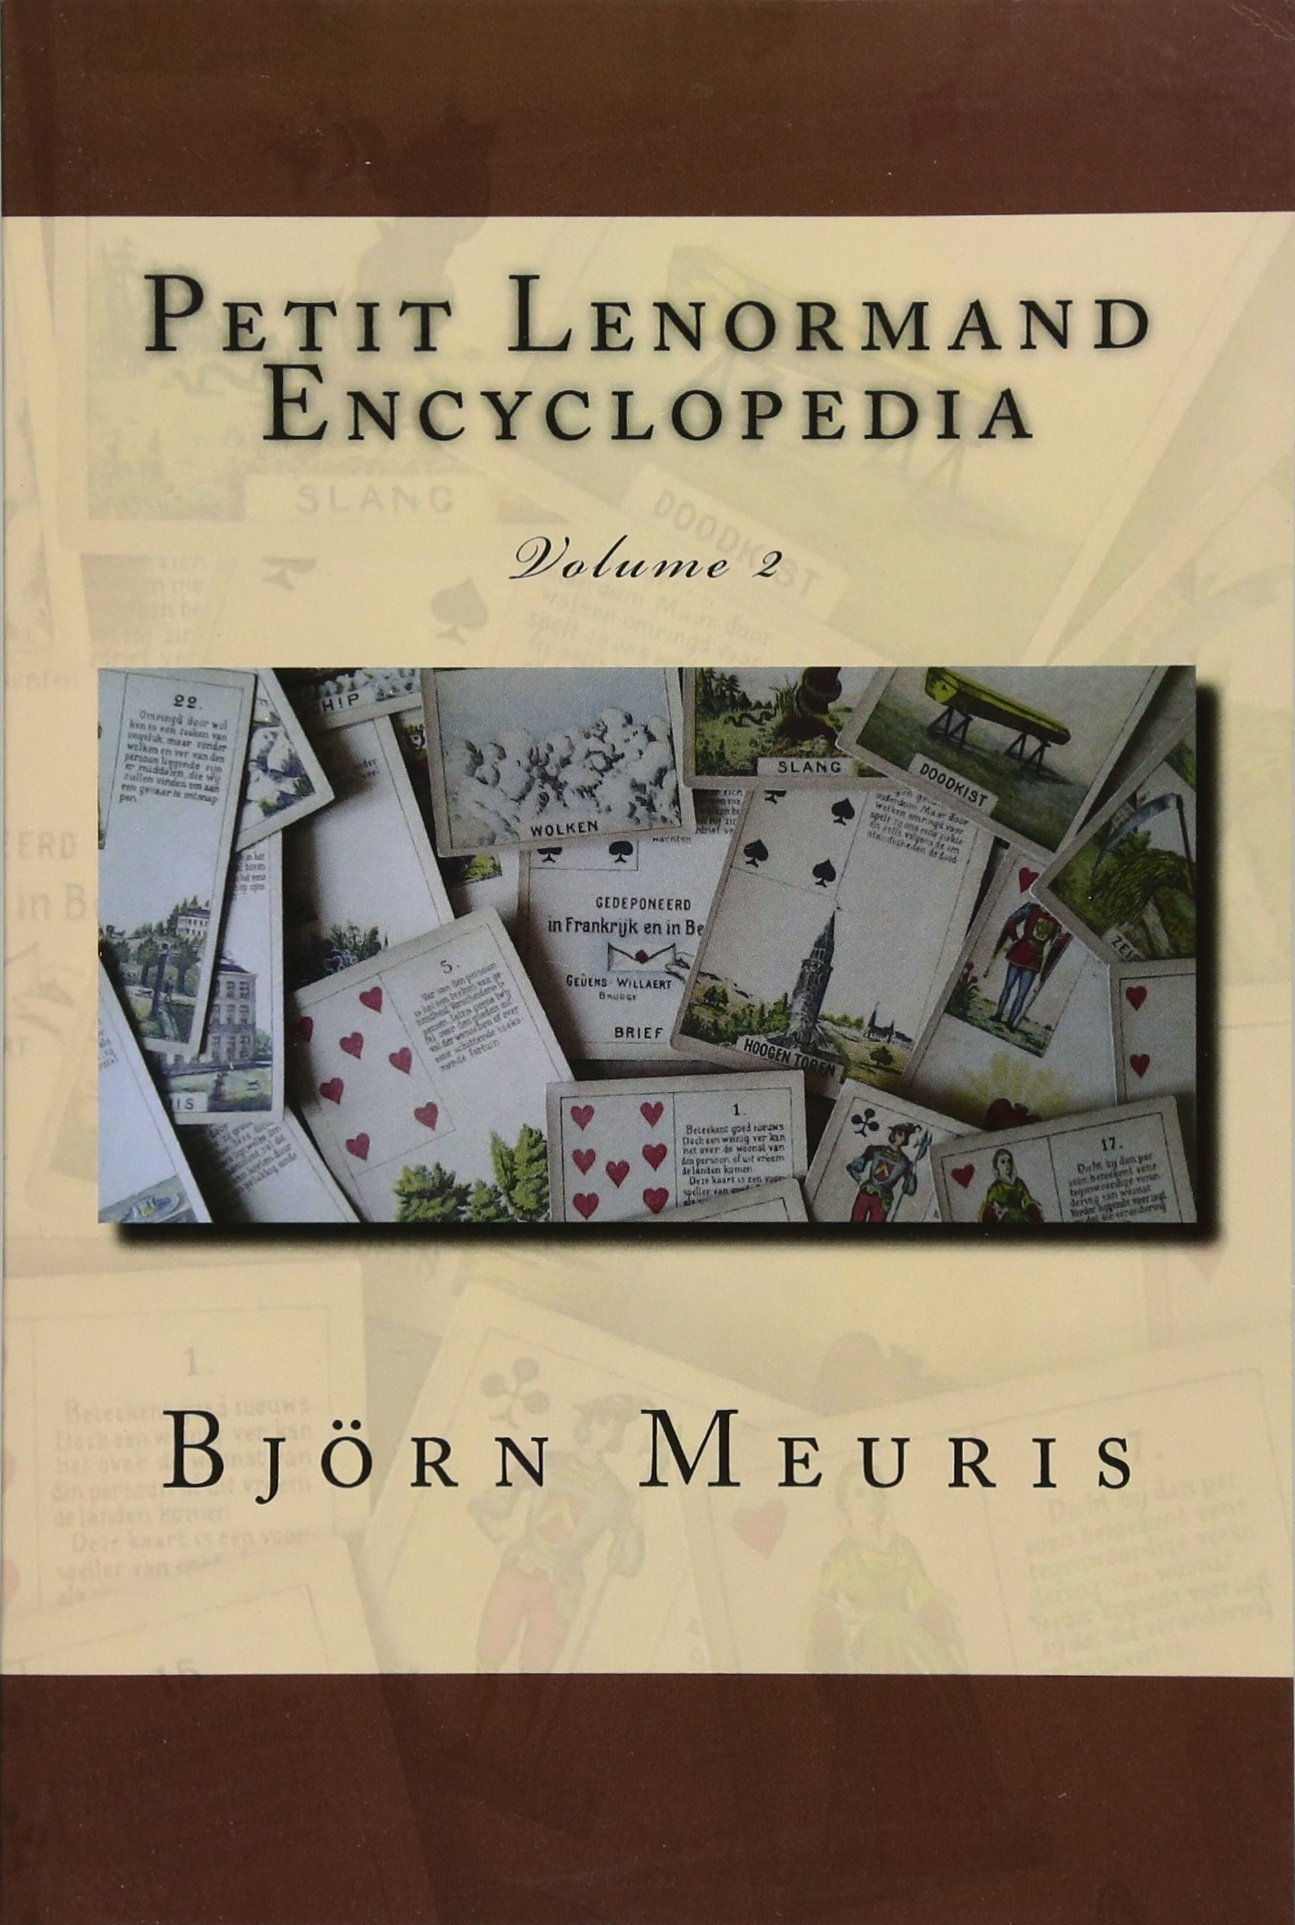 Petit Lenormand encyclopedia: Volume 2